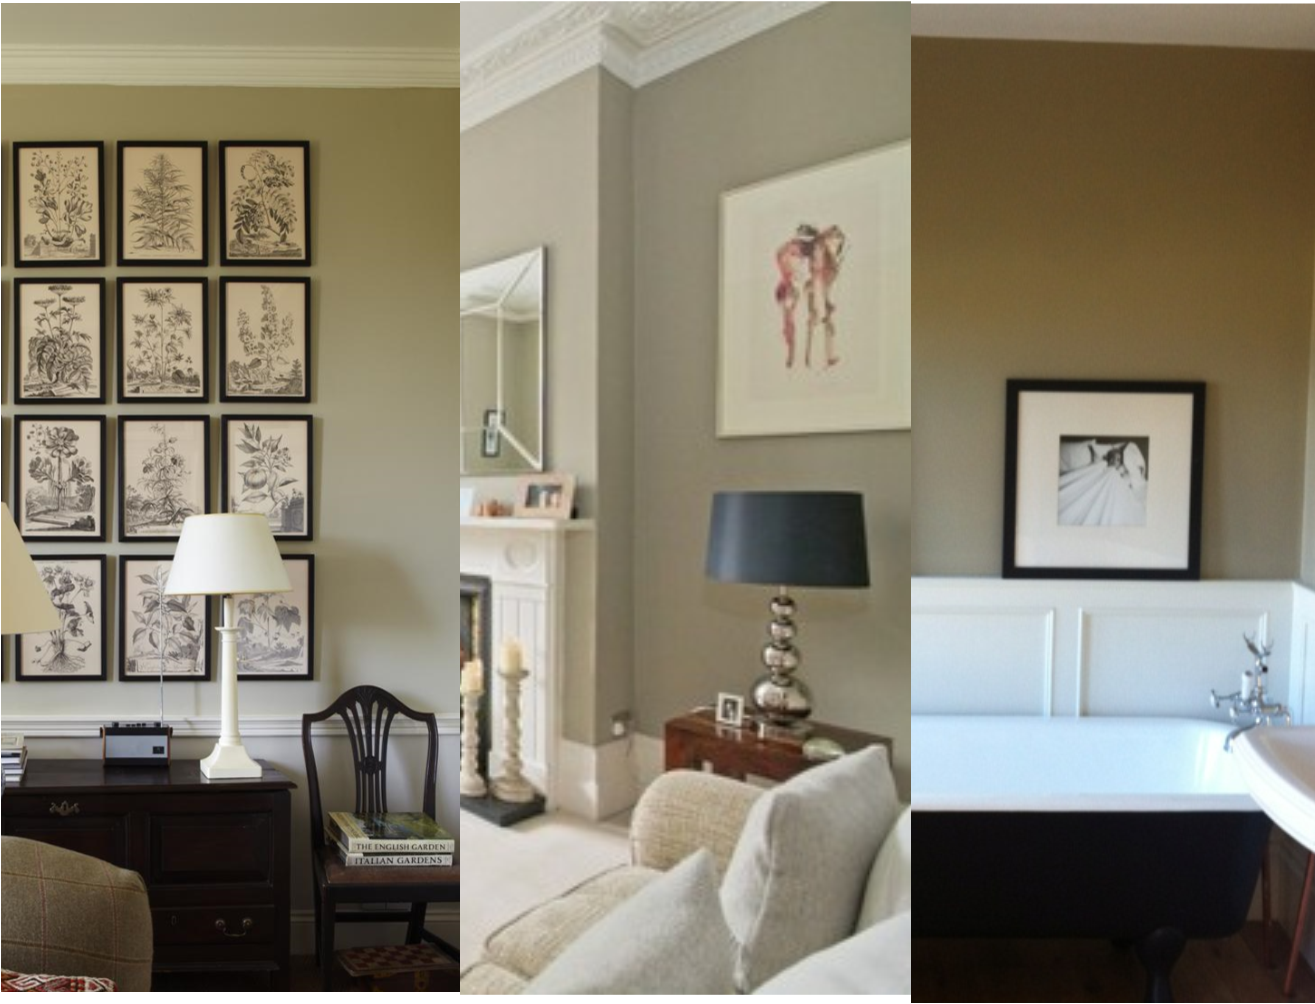 lucy 39 s forever home paint. Black Bedroom Furniture Sets. Home Design Ideas